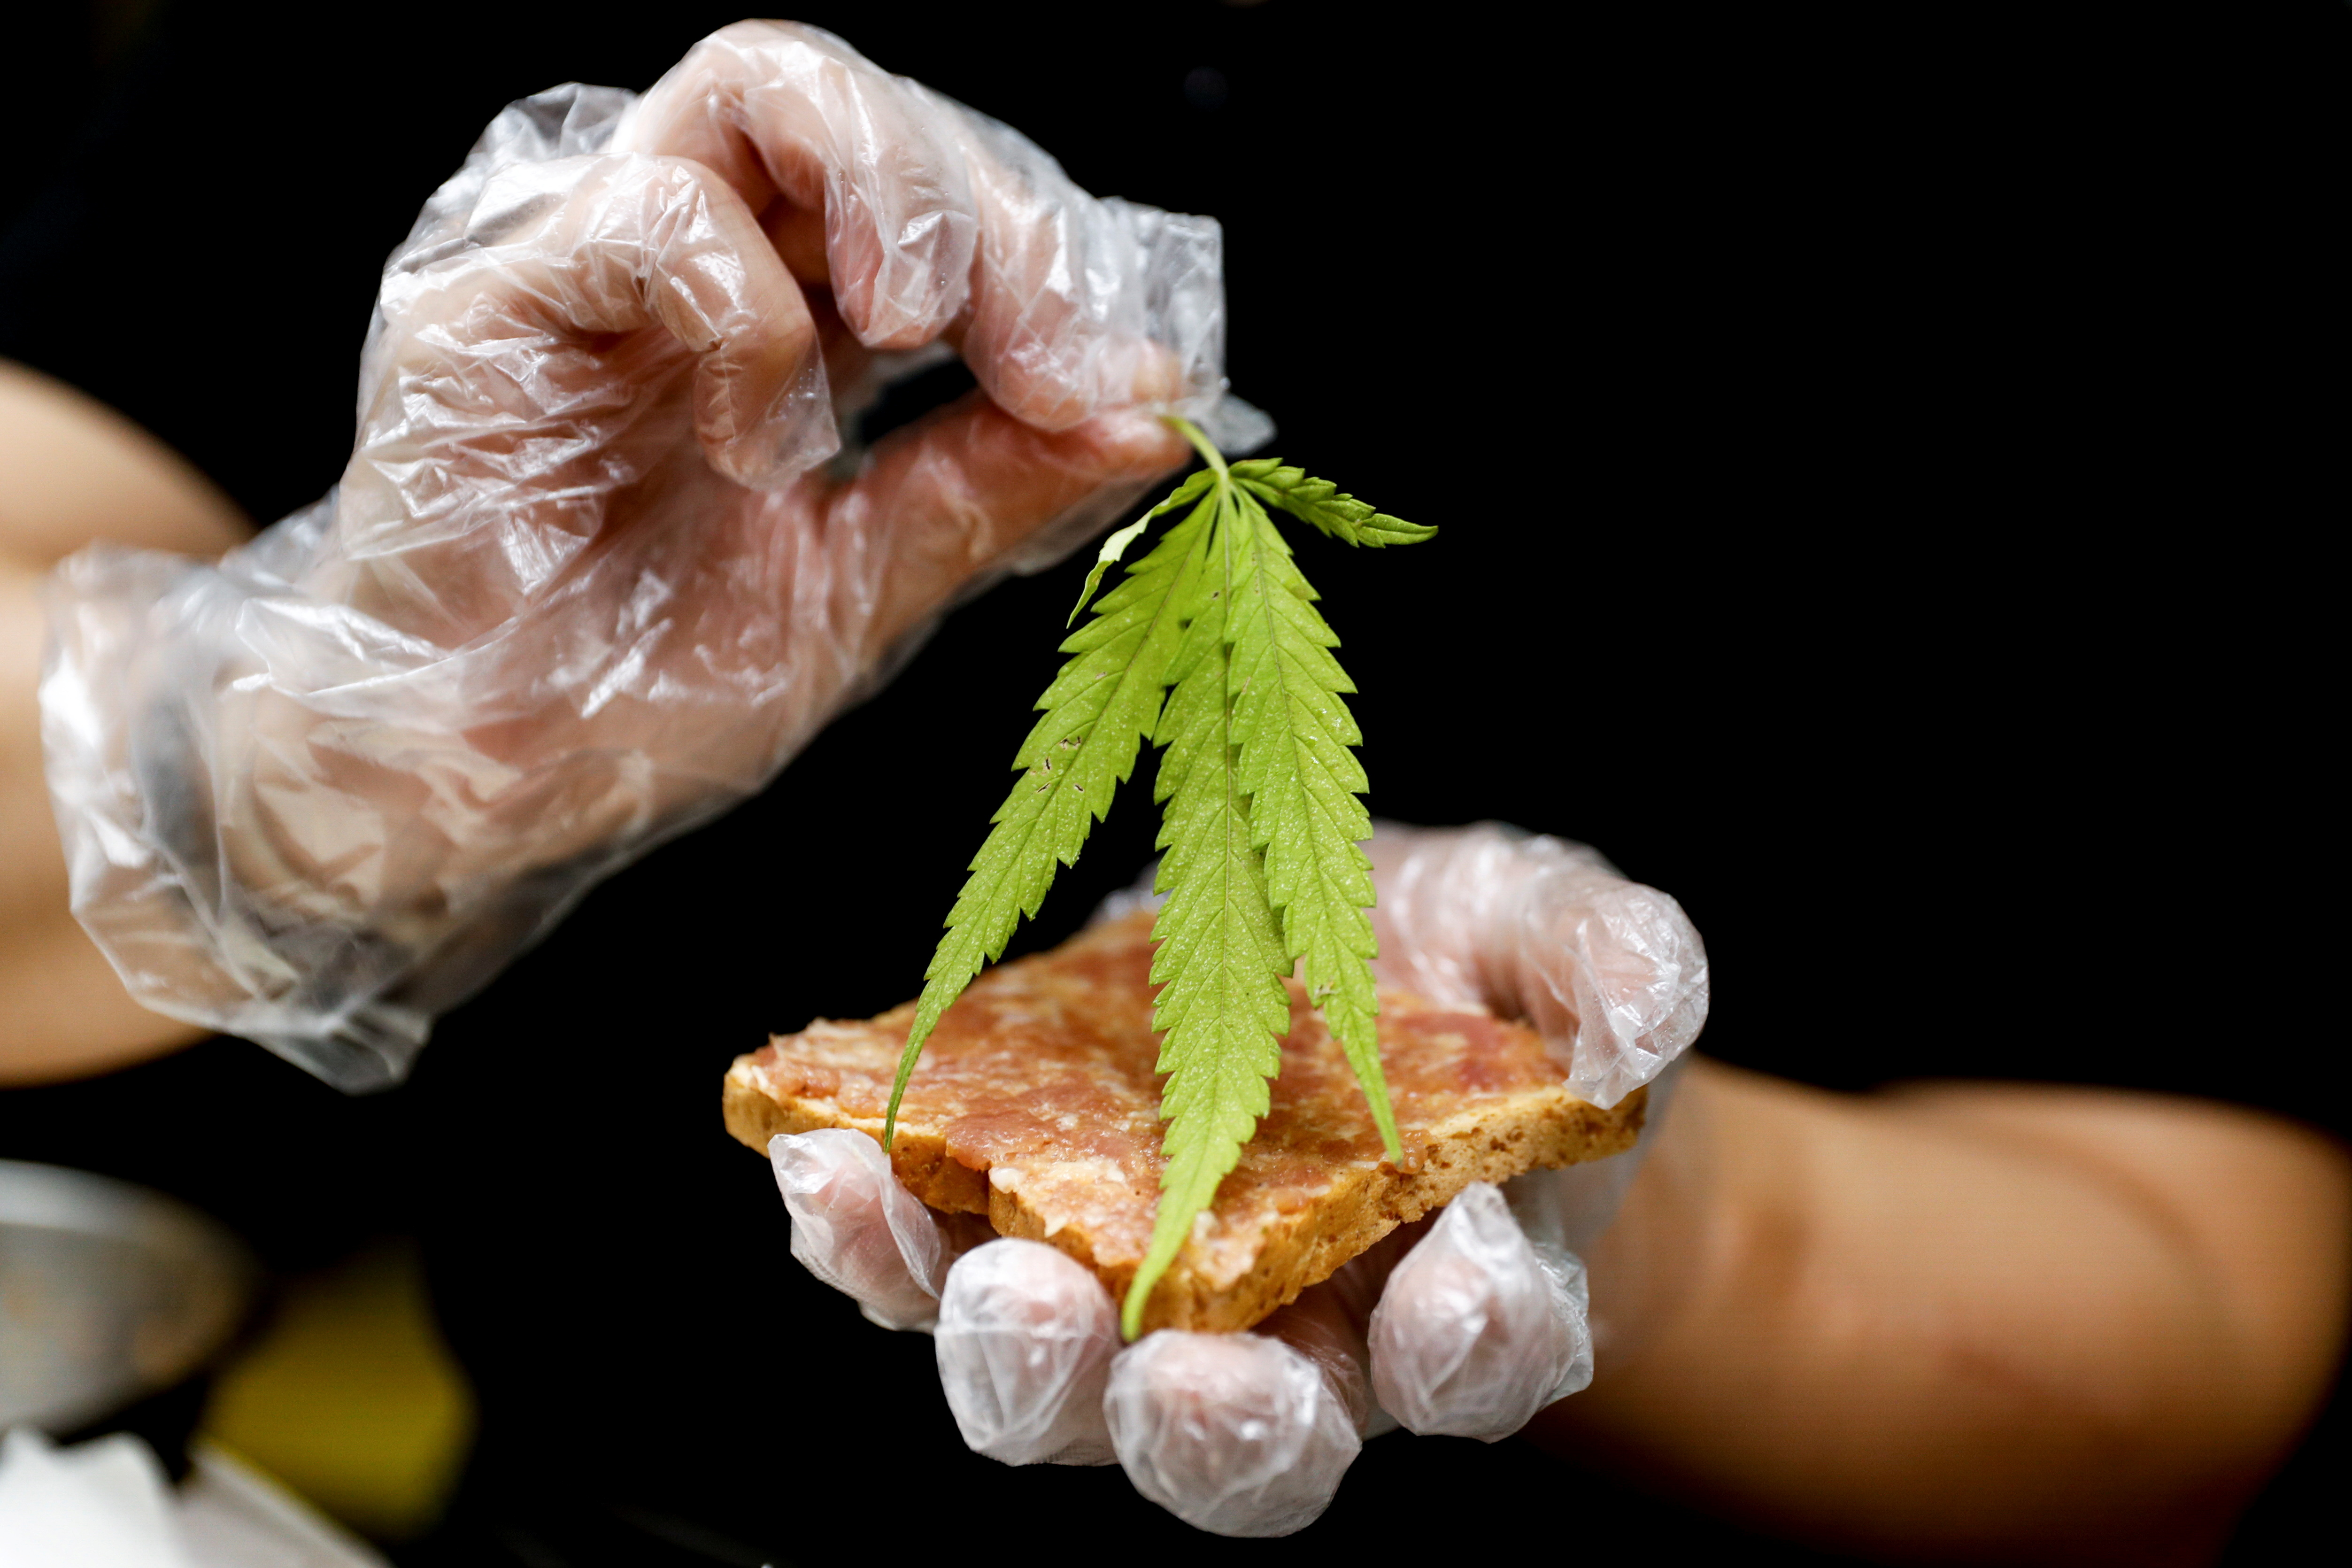 A chef prepares a pork sandwich with a marijuana leaf at Abhaibhubejhr hospital canteen which adds cannabis infused dishes to its menu after cannabis leaves, stems, stalks and roots were officially removed from Thailand's narcotics list, allowing basically any part of the plant except for the buds to be used for consumption in Prachin Buri province, outside Bangkok, Thailand January 15, 2021. REUTERS/Jorge Silva